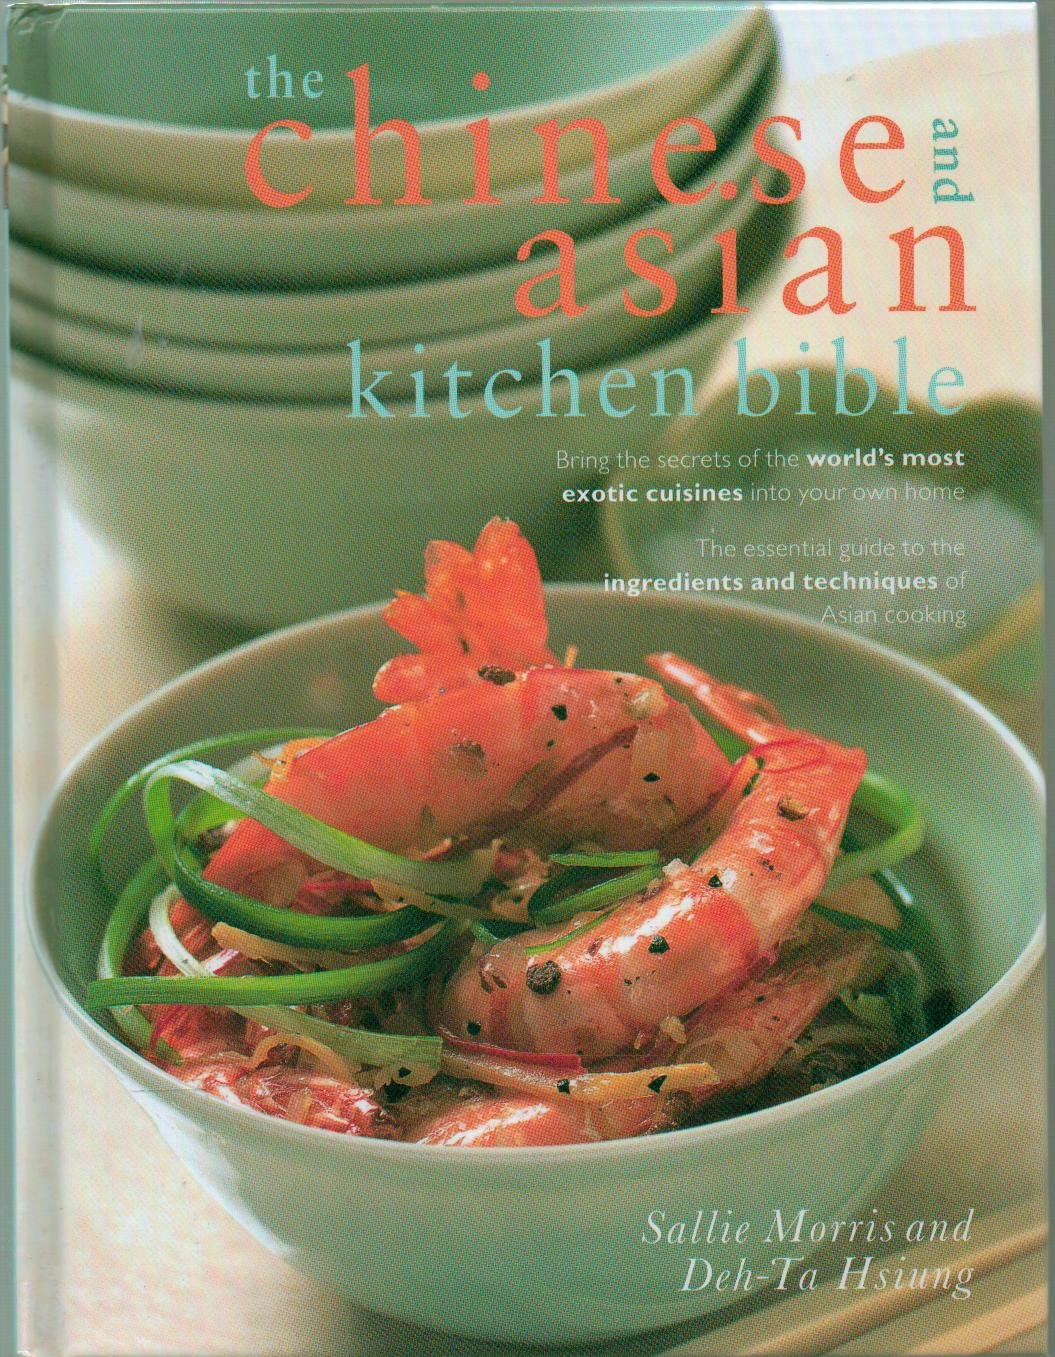 The Chinese and Asian Kitchen Bible ebook